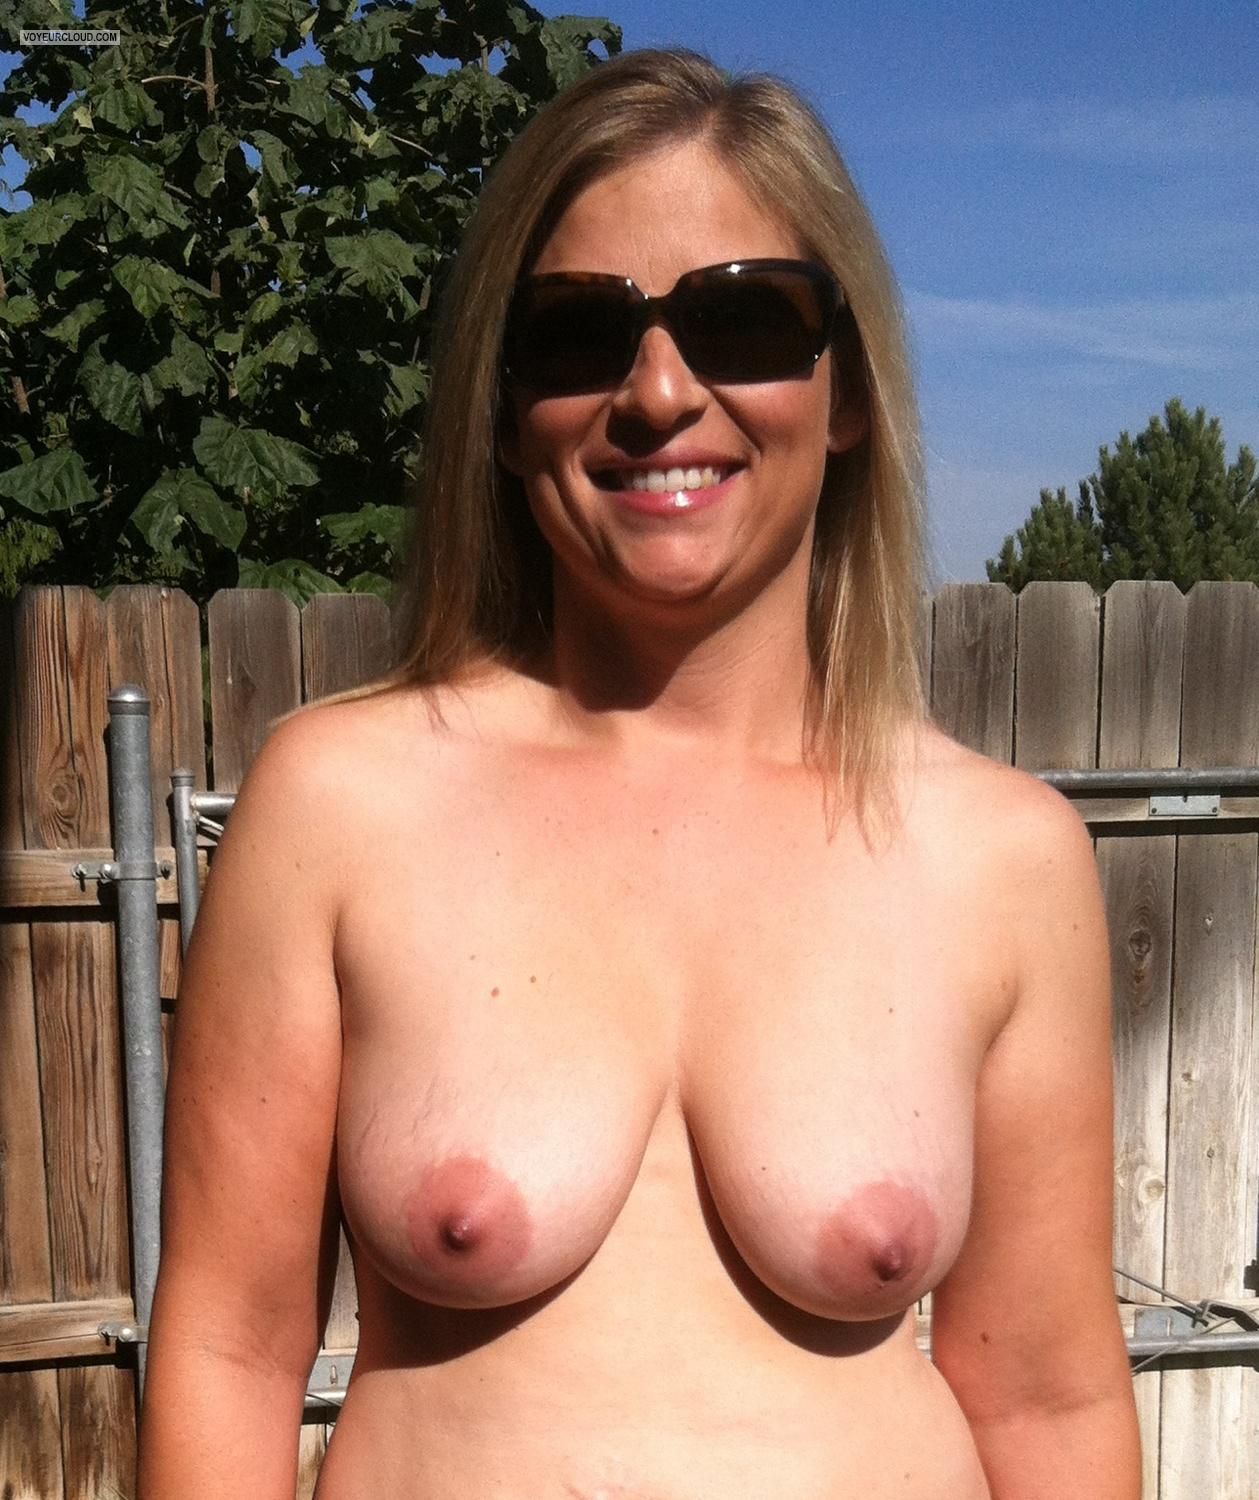 Medium tits topless friends